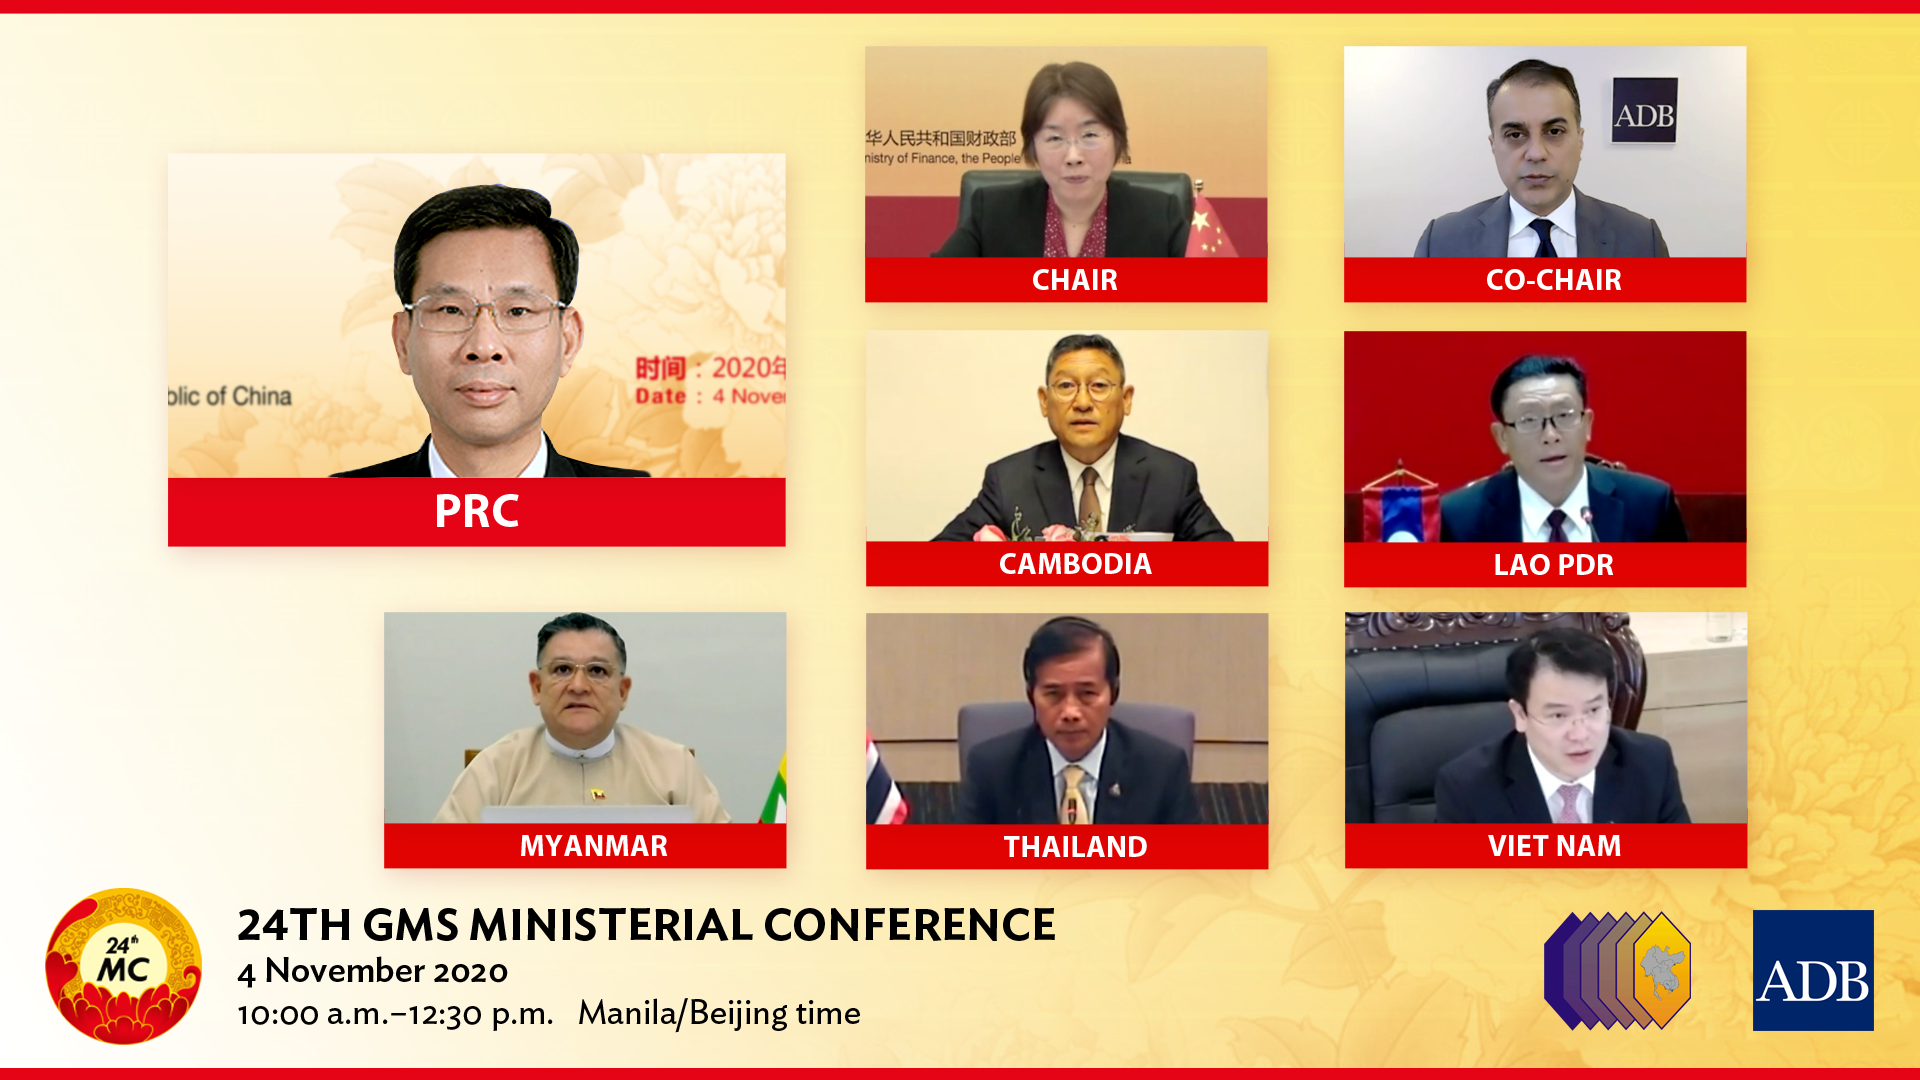 24th Greater Mekong Subregion Ministerial Conference